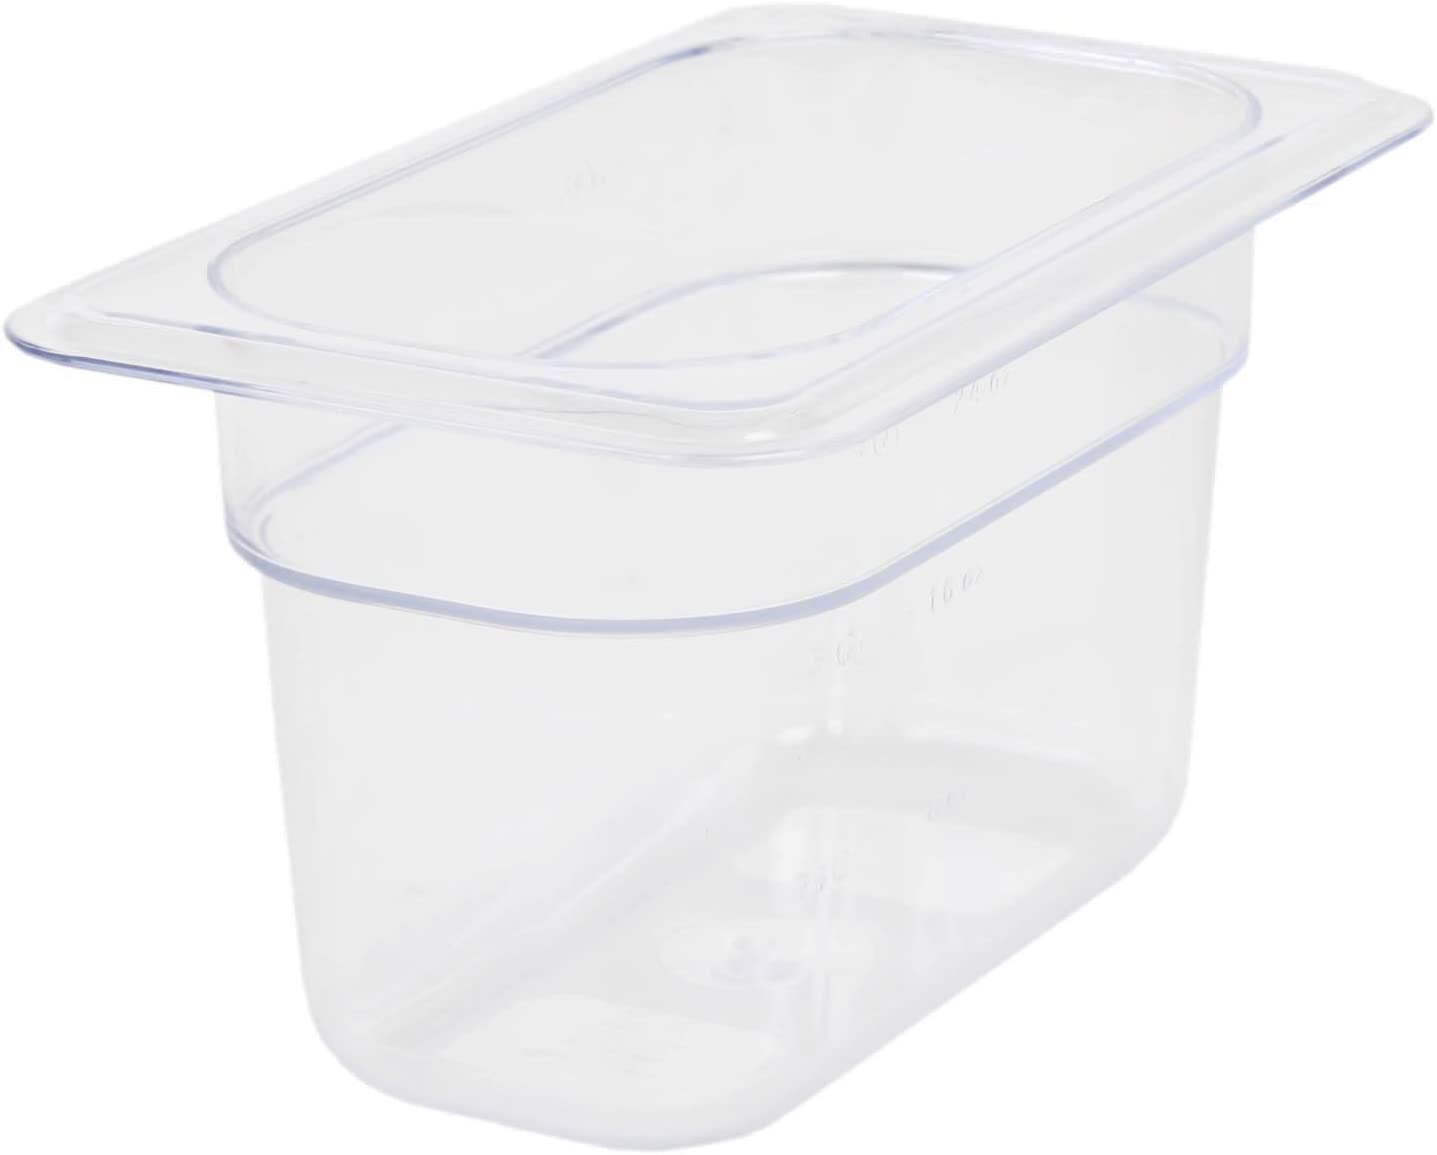 Excellante Ninth Size 4-Inch Deep Polycarbonate Food Pan